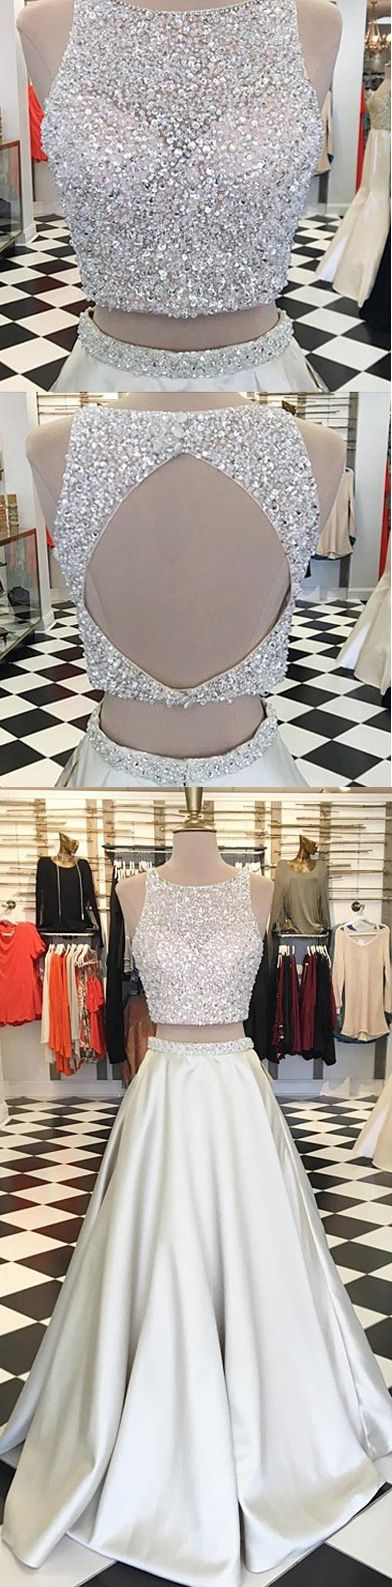 silver sparkly long prom dresses, backless prom dresses for women, 2 piece prom dresses, sexy two piece prom dresses, long prom dresses beaded, cheap prom dresses long, dresses for women, new arrival prom dresses, high quality prom dresses 2017